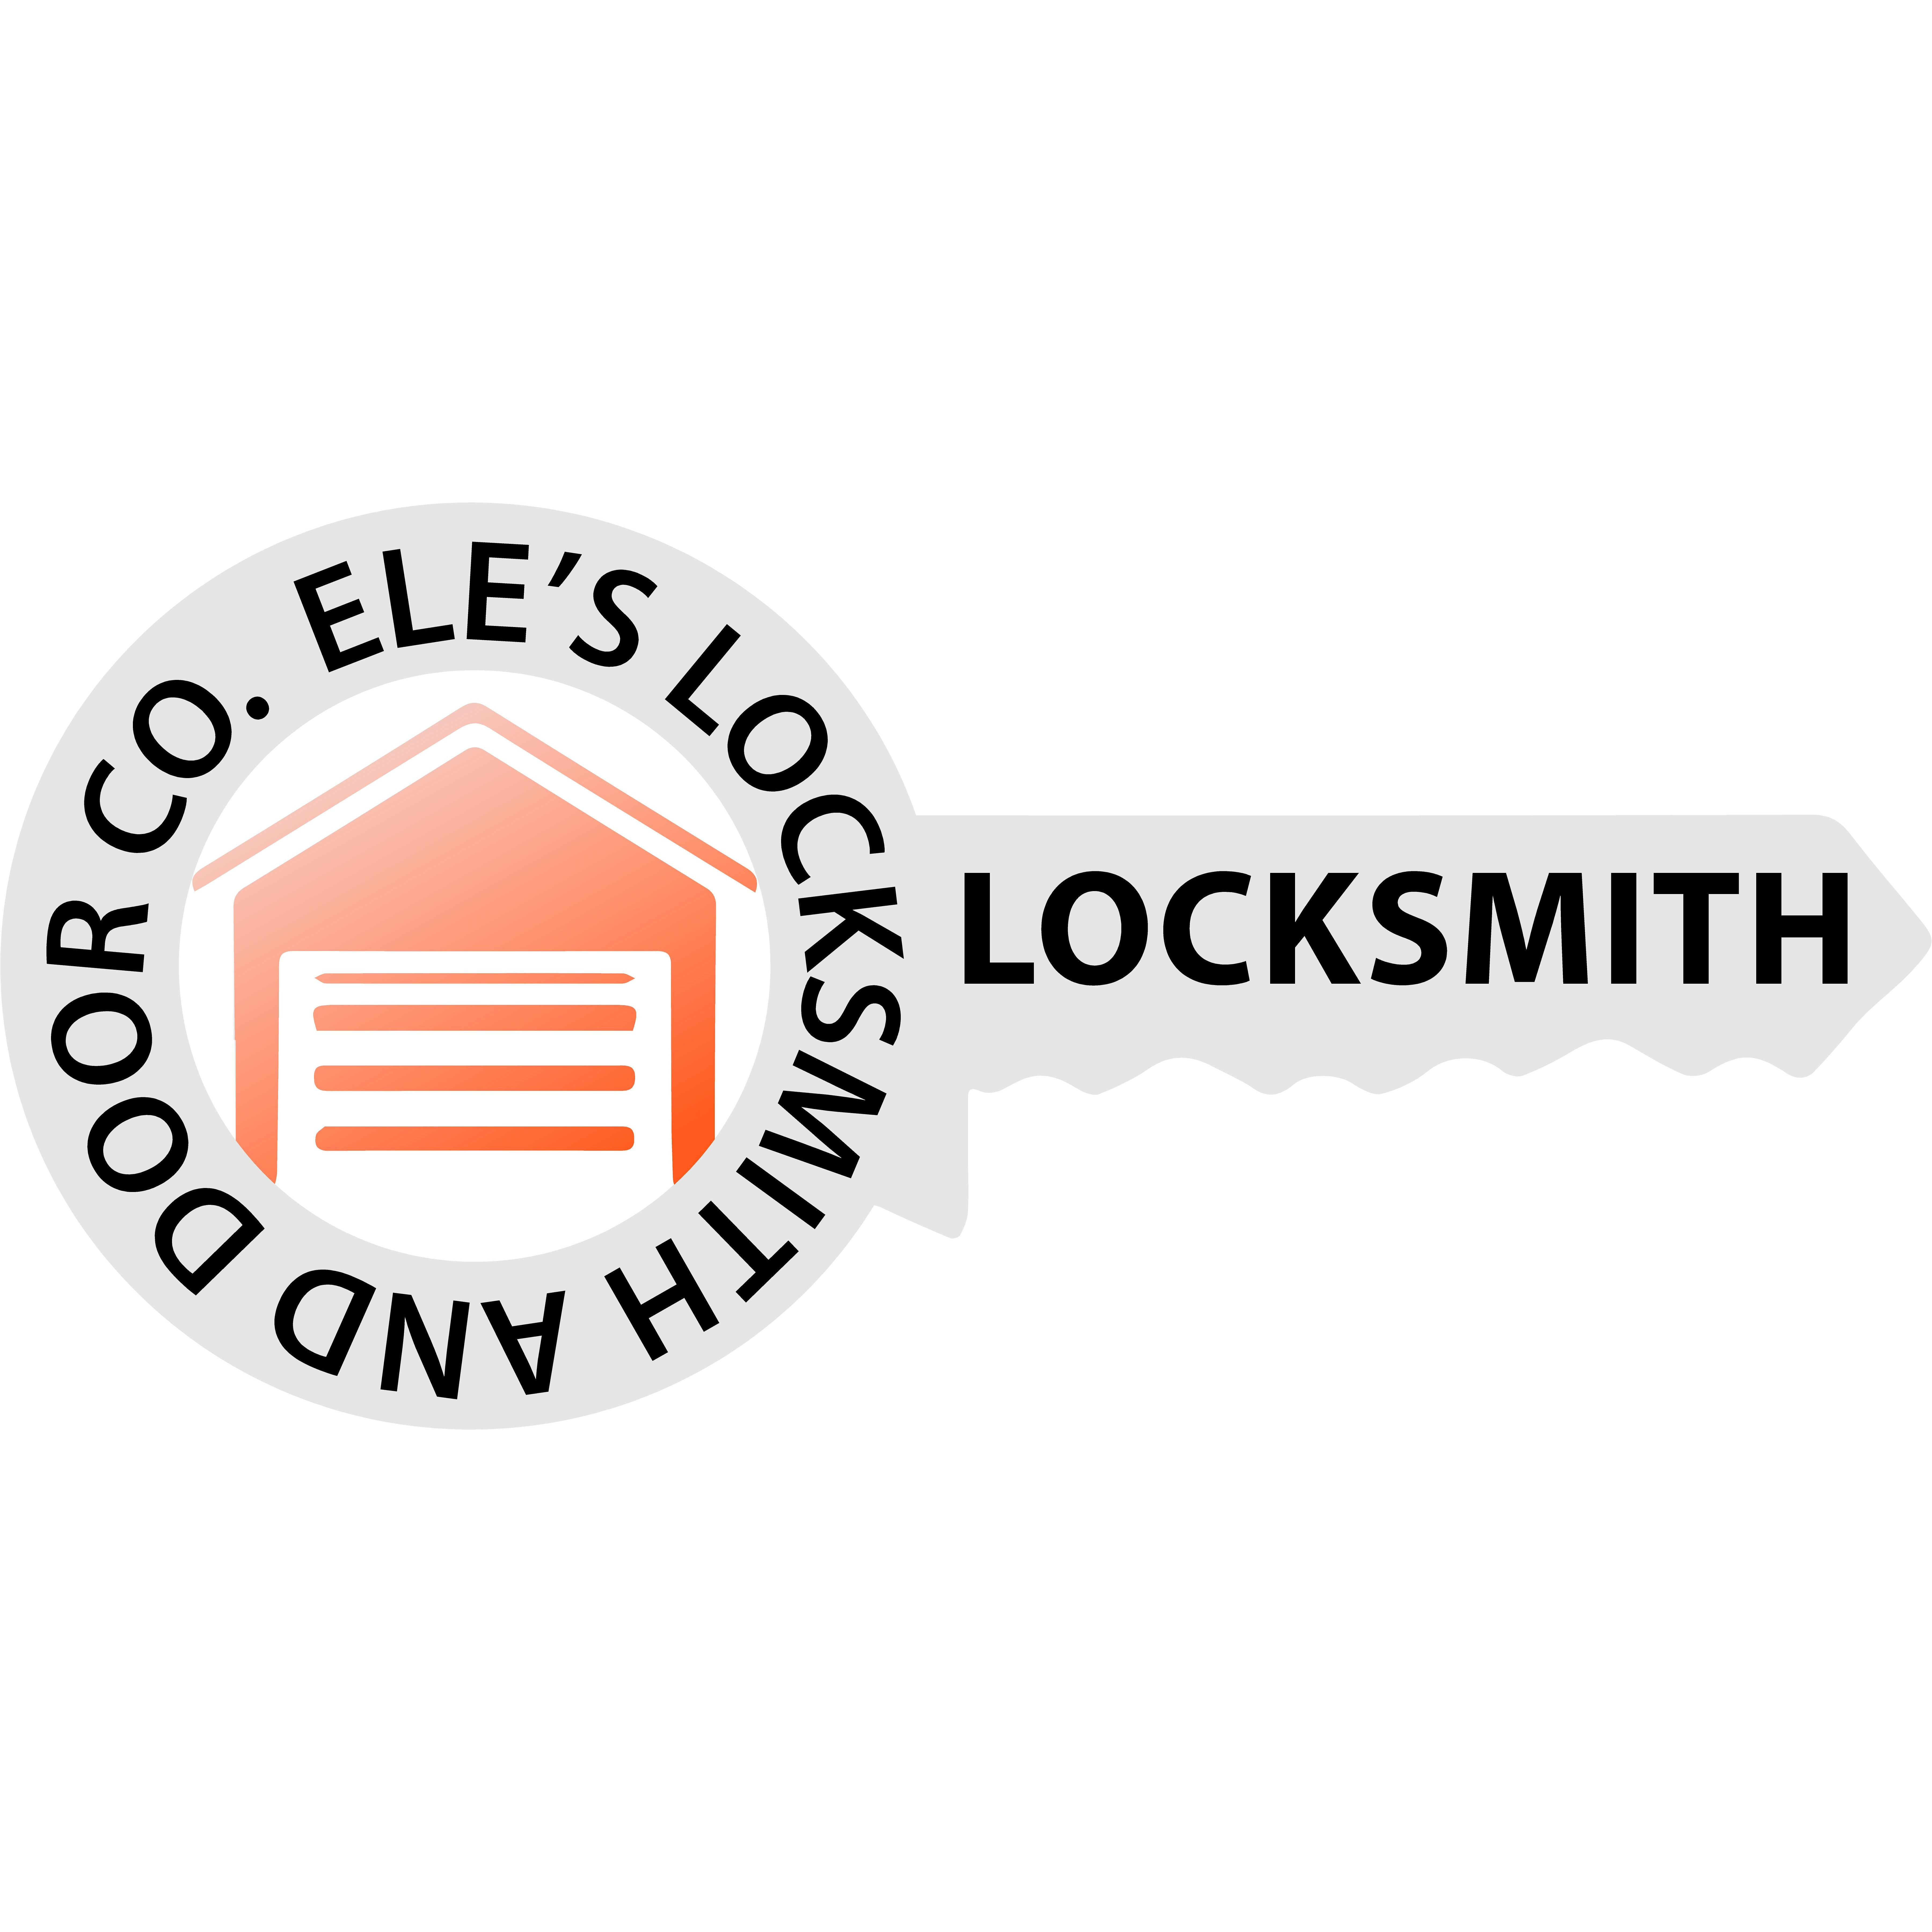 ELE's locksmith & door co